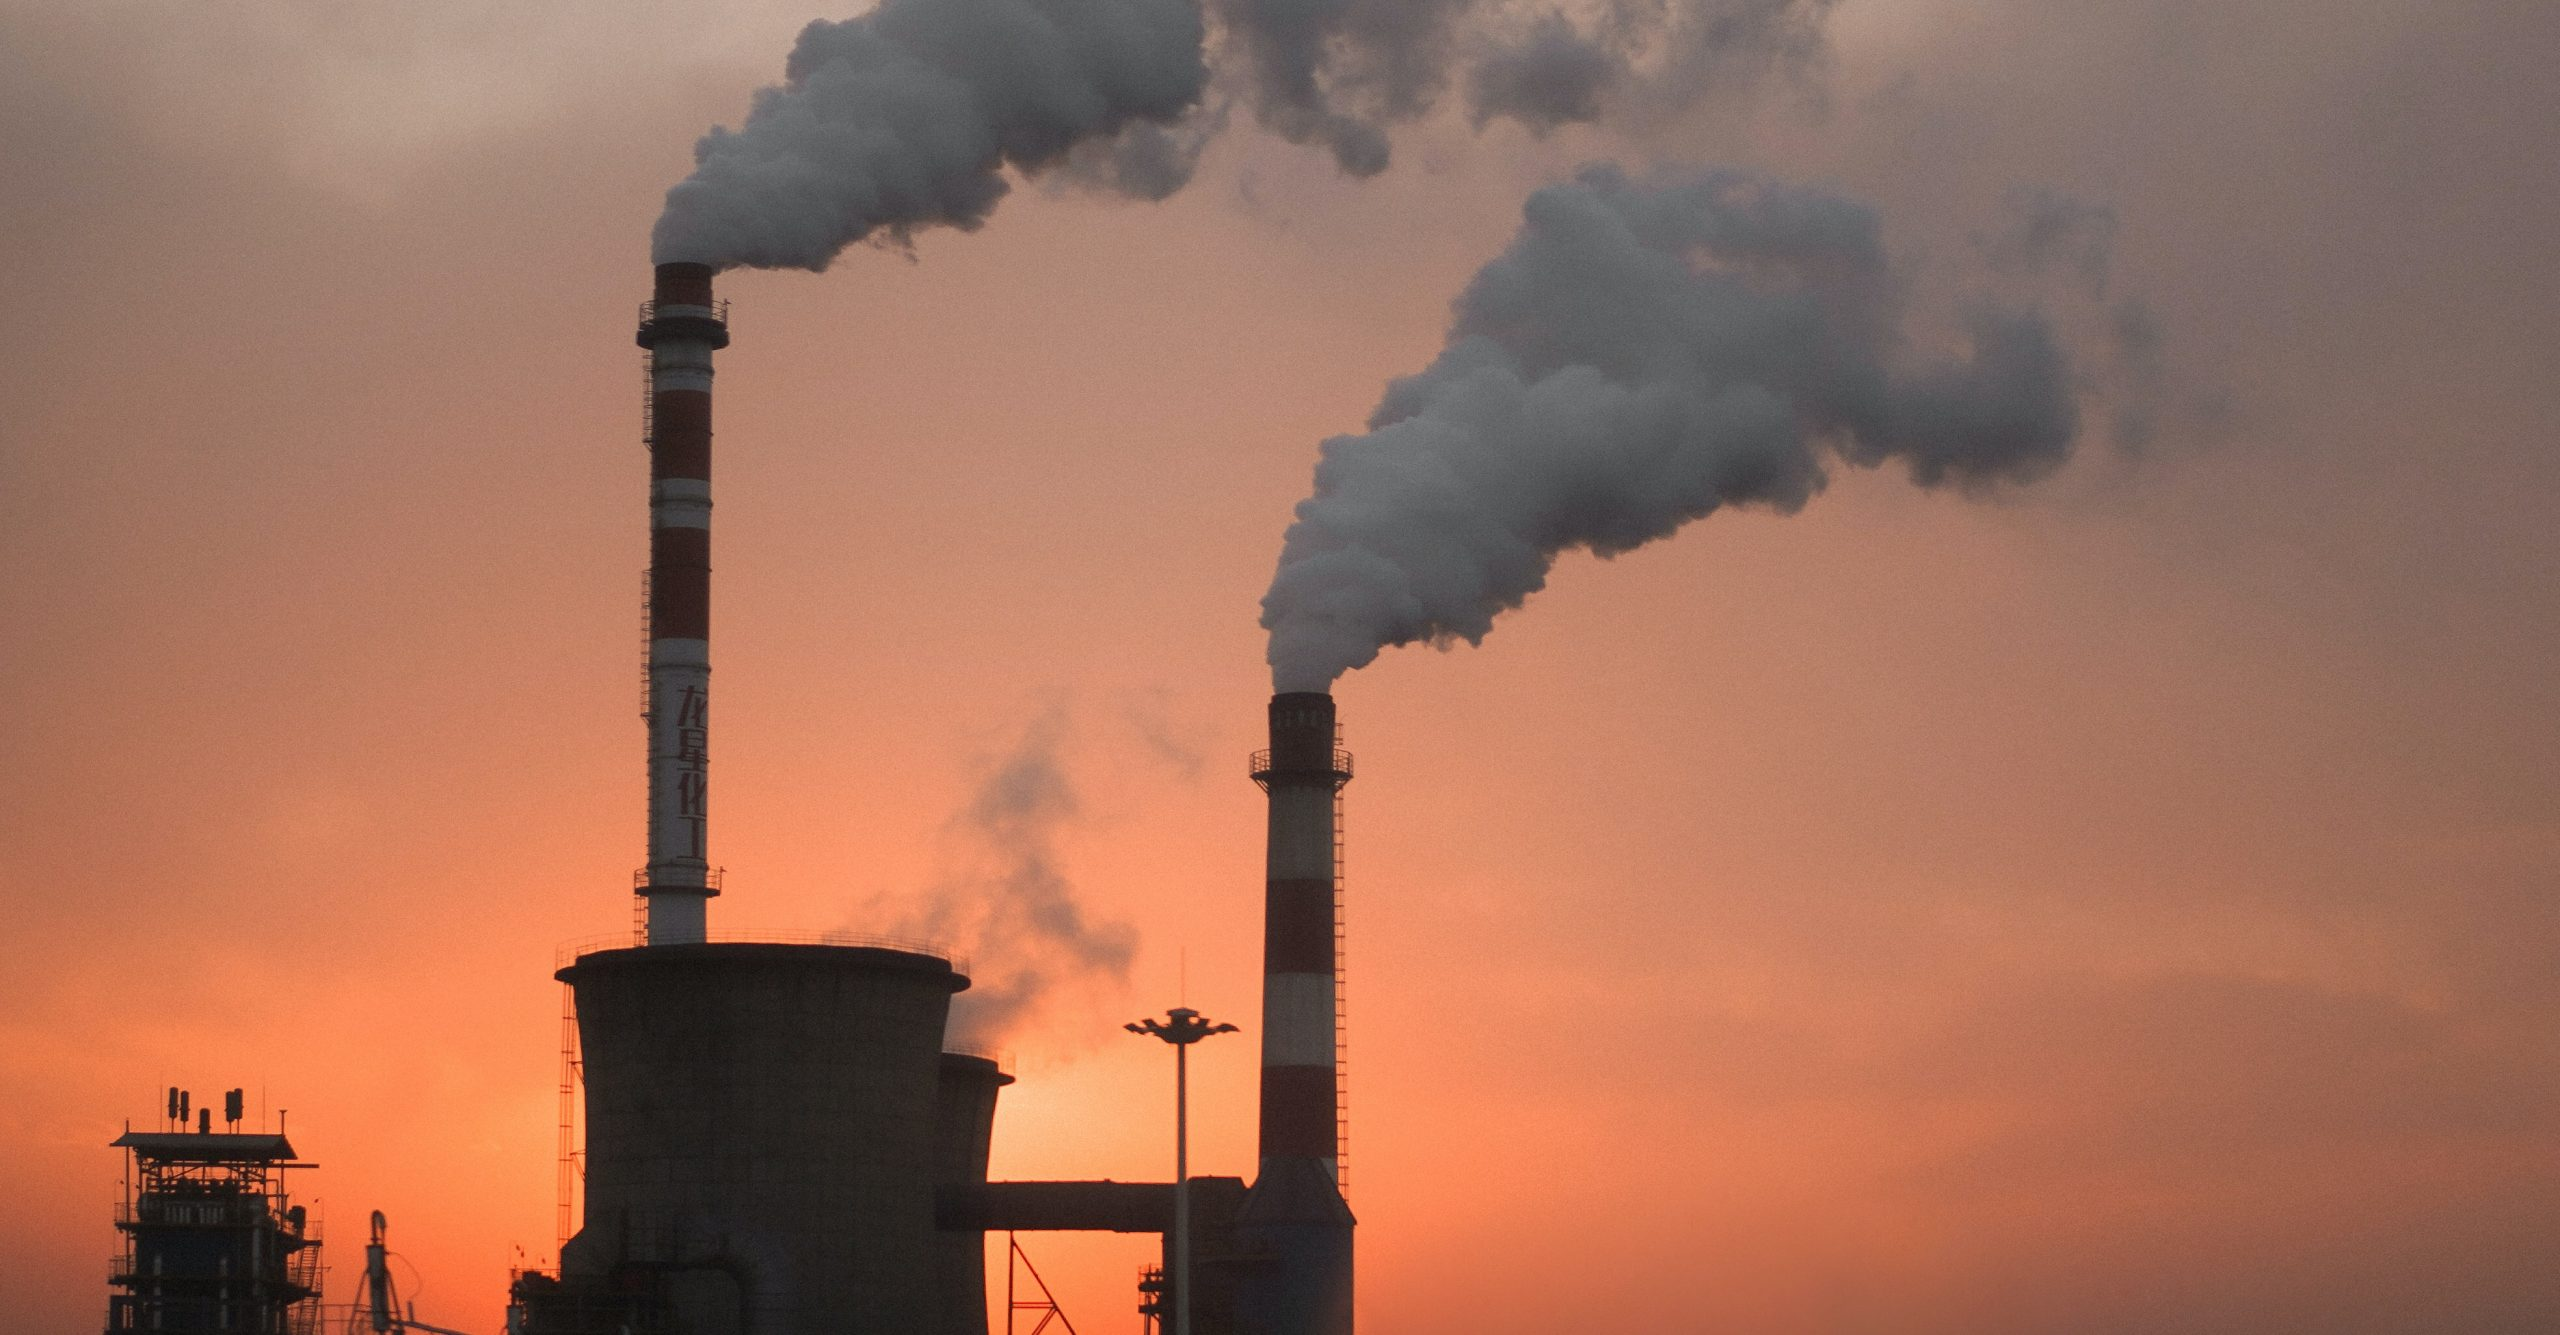 An image of pollution being produced by a factory